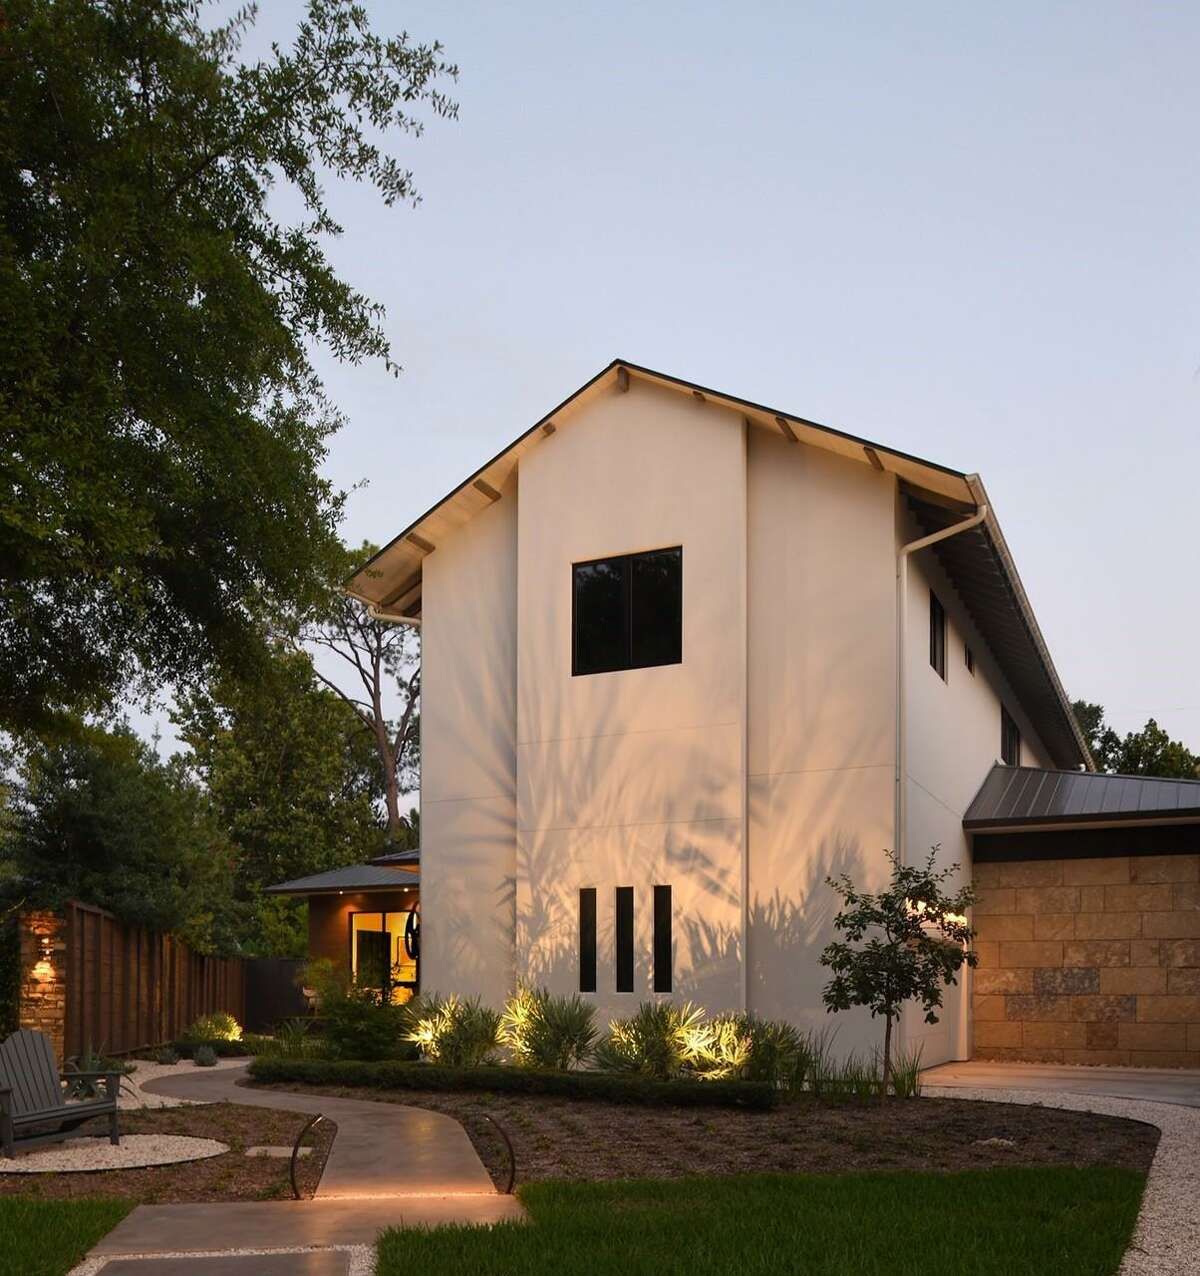 Home designed by Gary R. Chandler Architecture & Interiors. It will be on the MA+DS 2020 Virtual Home Tour.